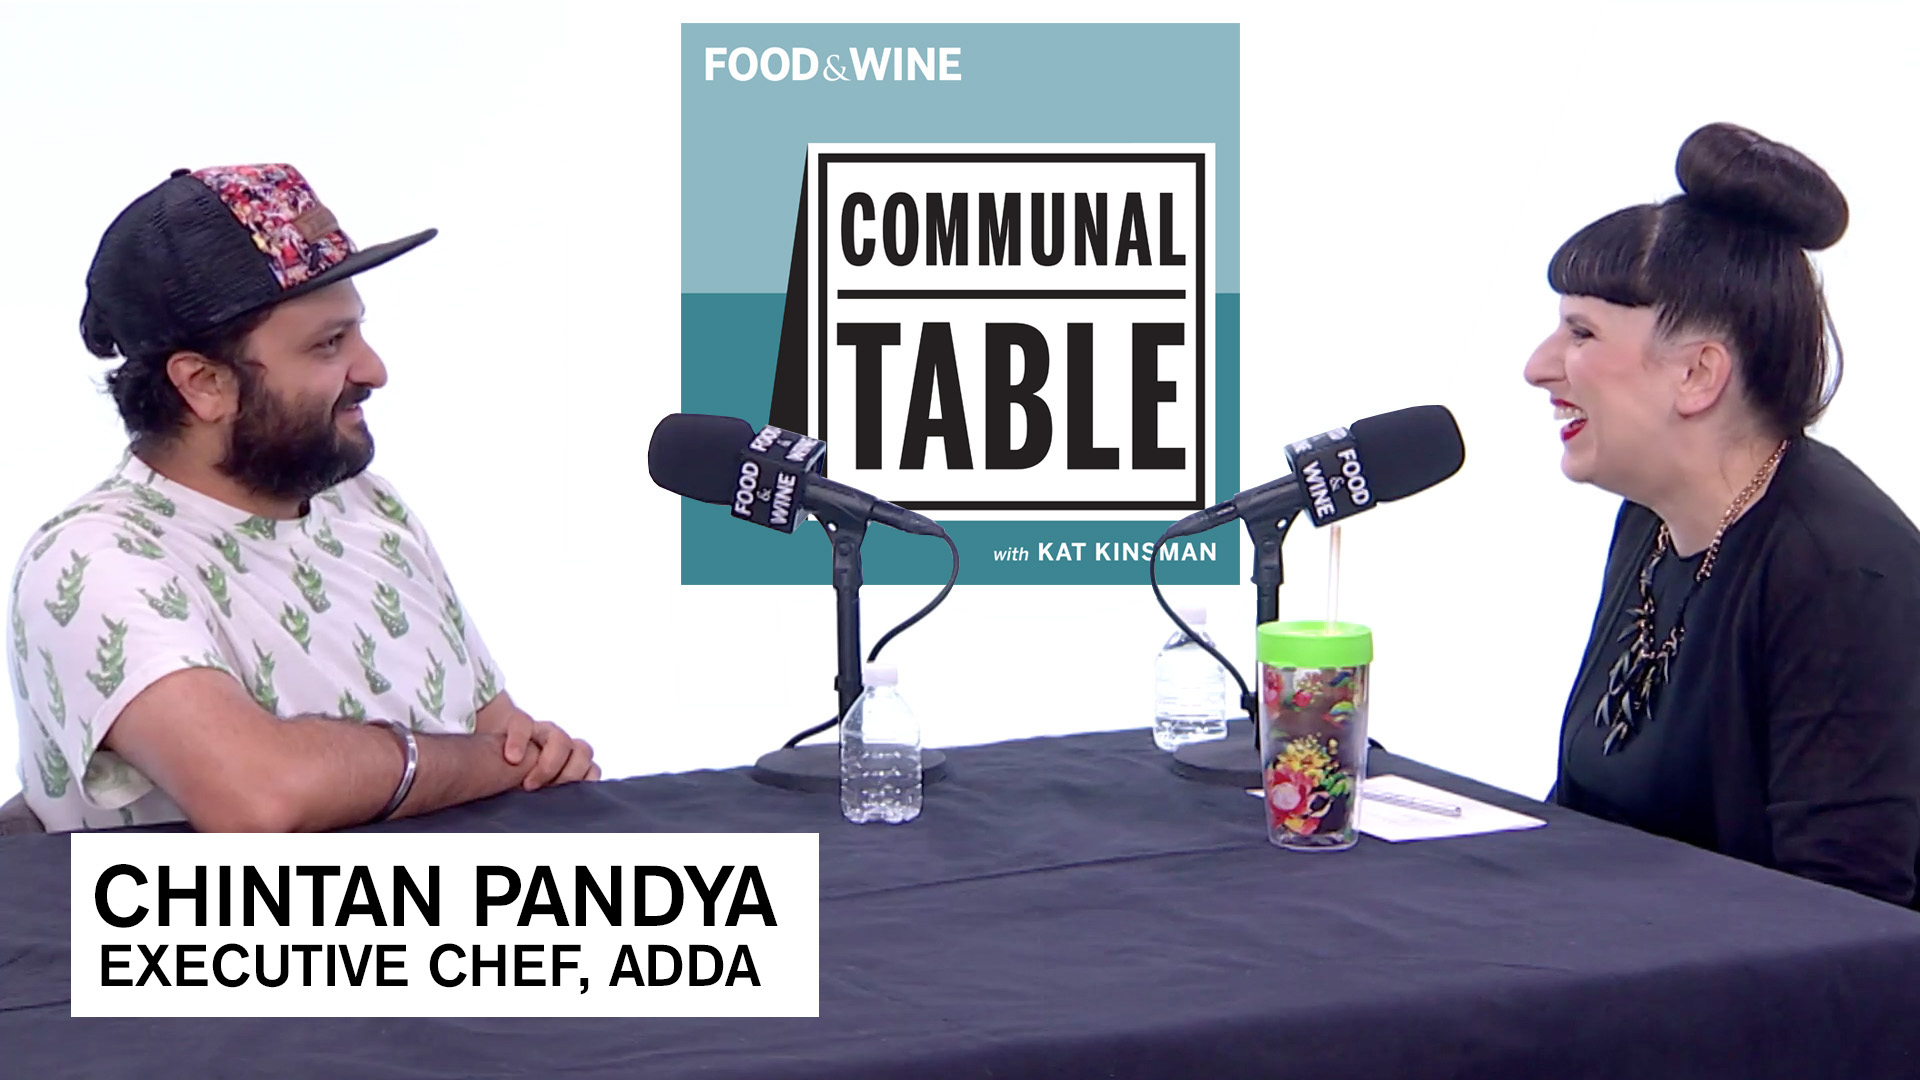 communal-table-chintan-pandya-FT-blog091219.jpg